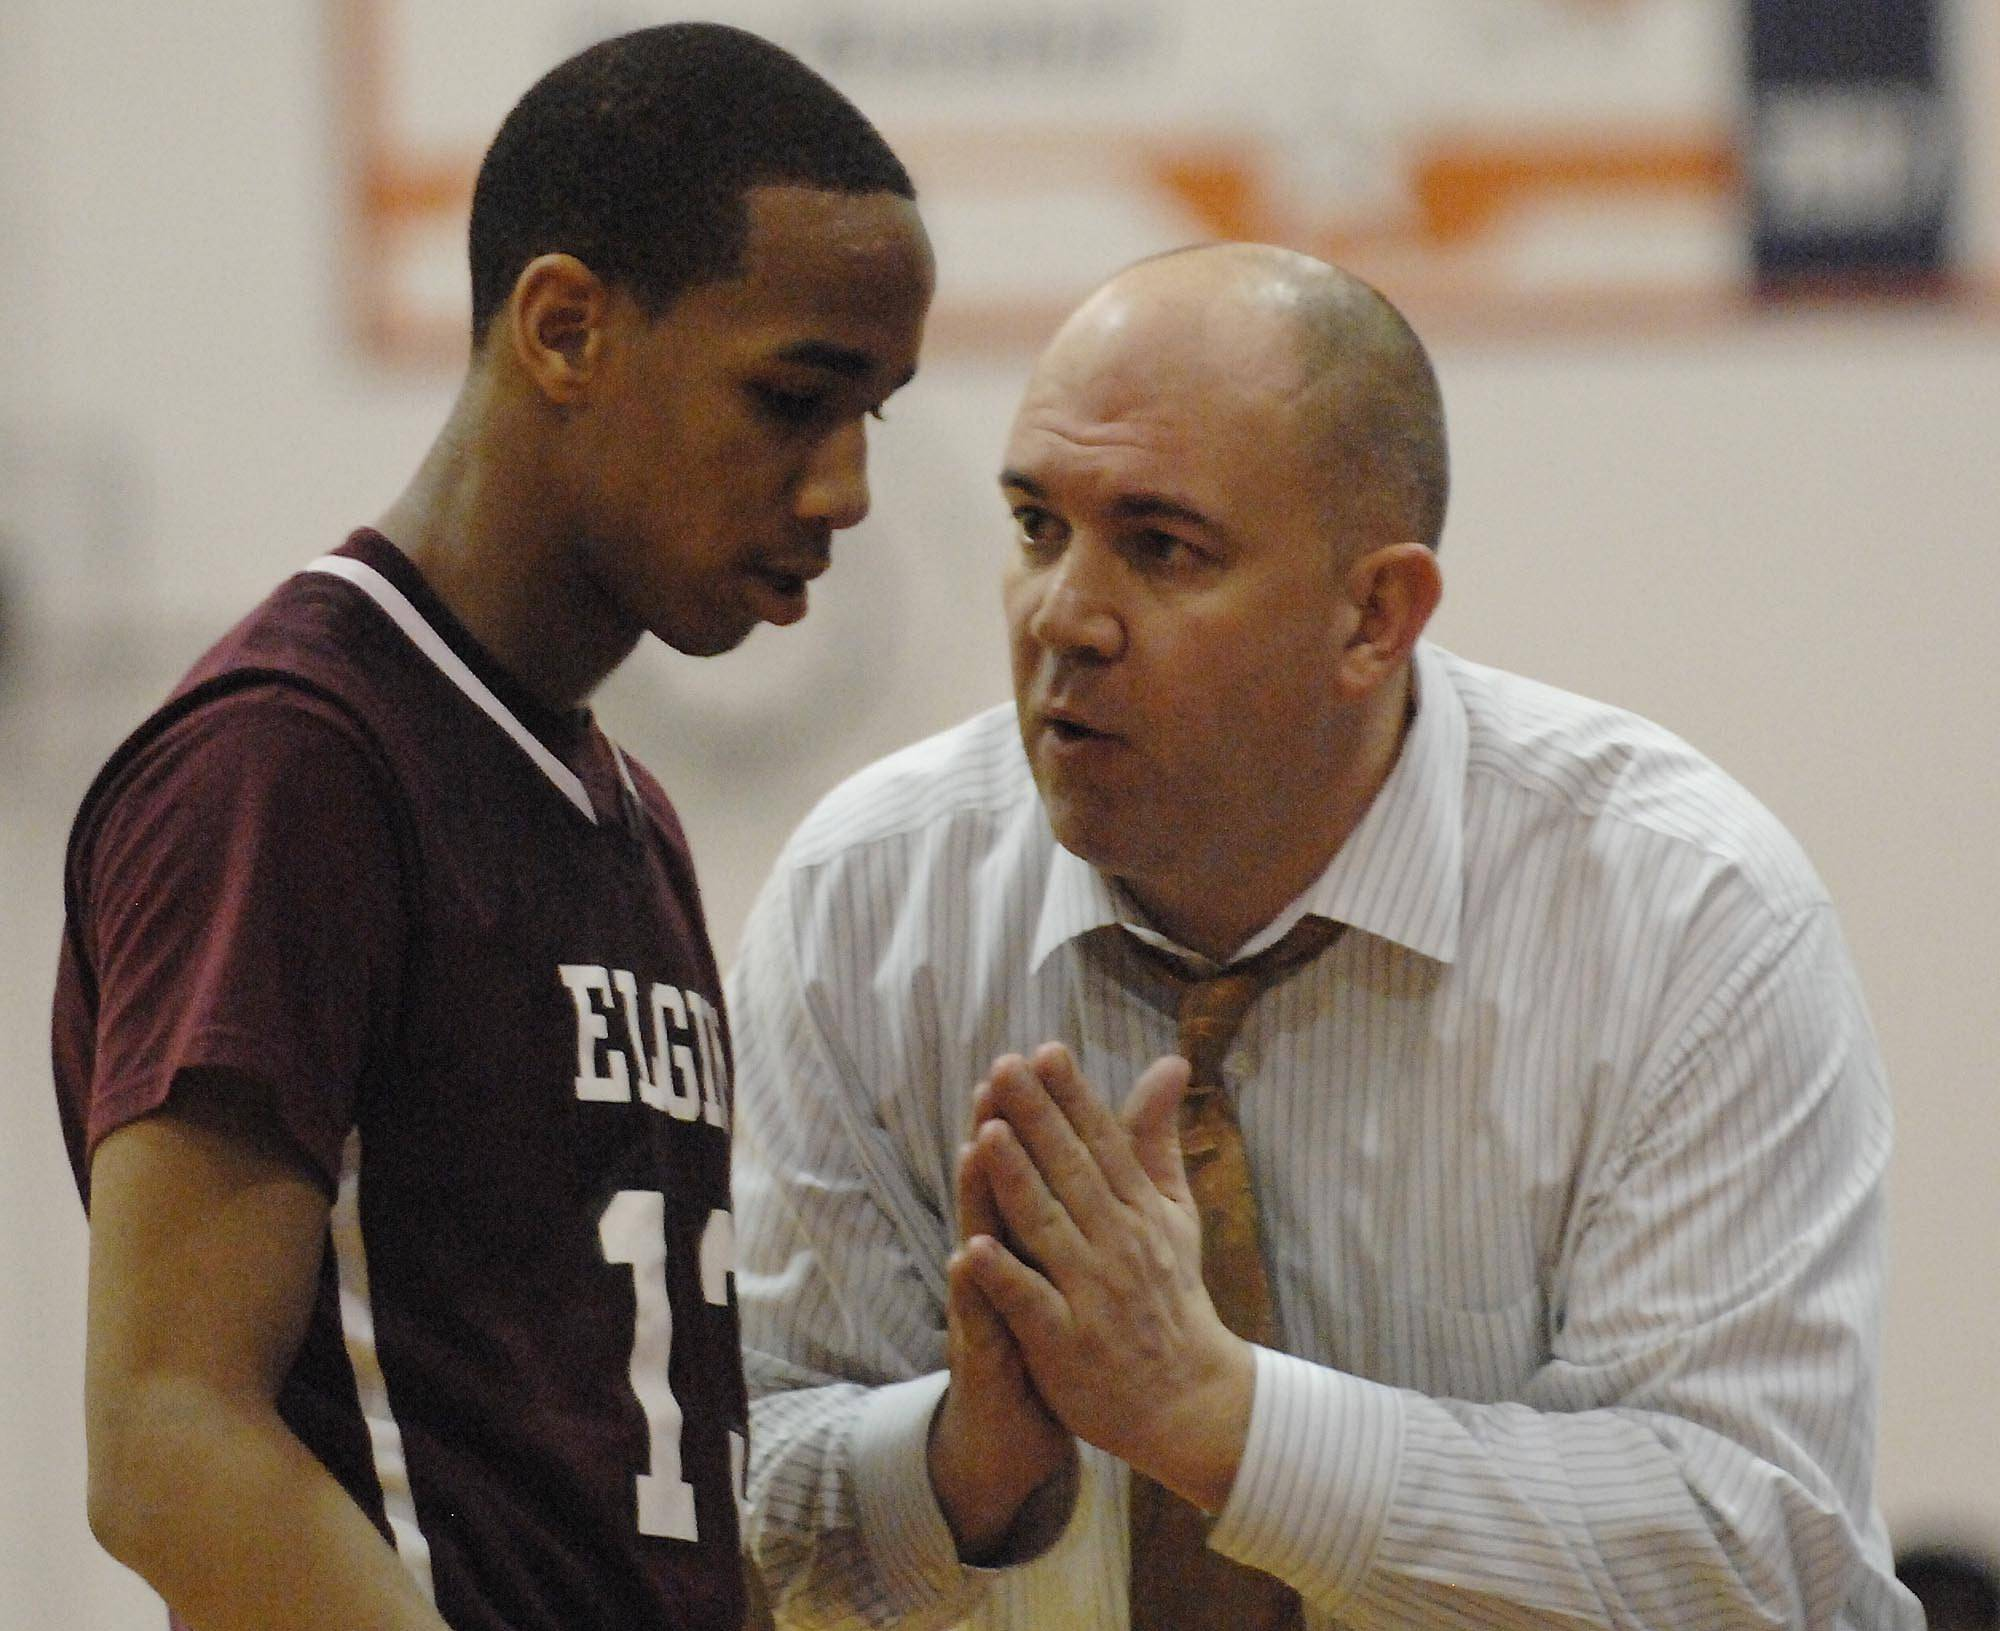 Elgin High boys basketball coach Mike Sitter, right, has been named the new athletic director at Hampshire High School effective July 1.